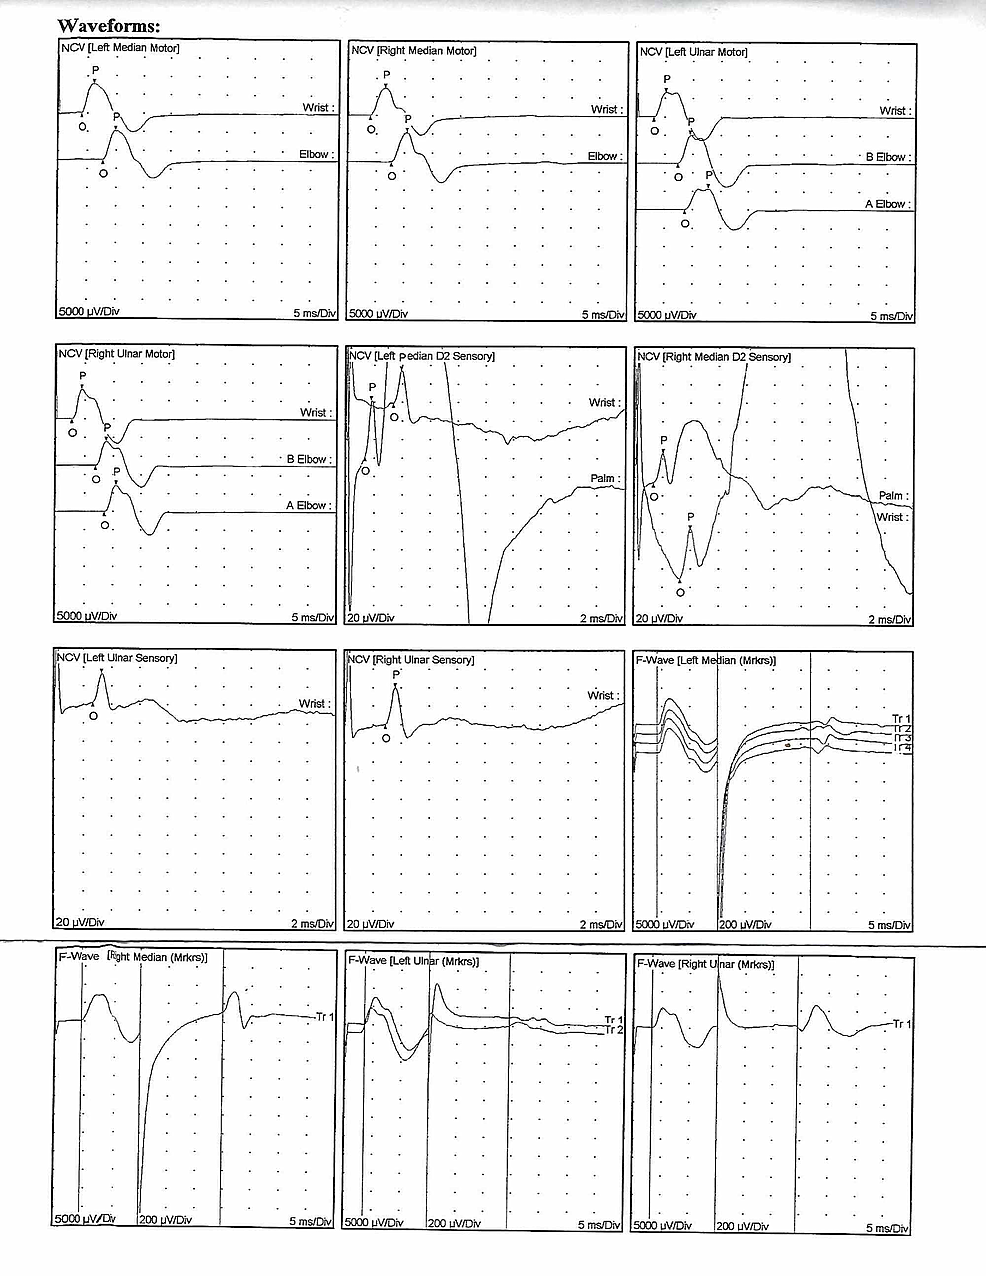 Nerve-conduction-study-and-F-wave-latency-waveforms.